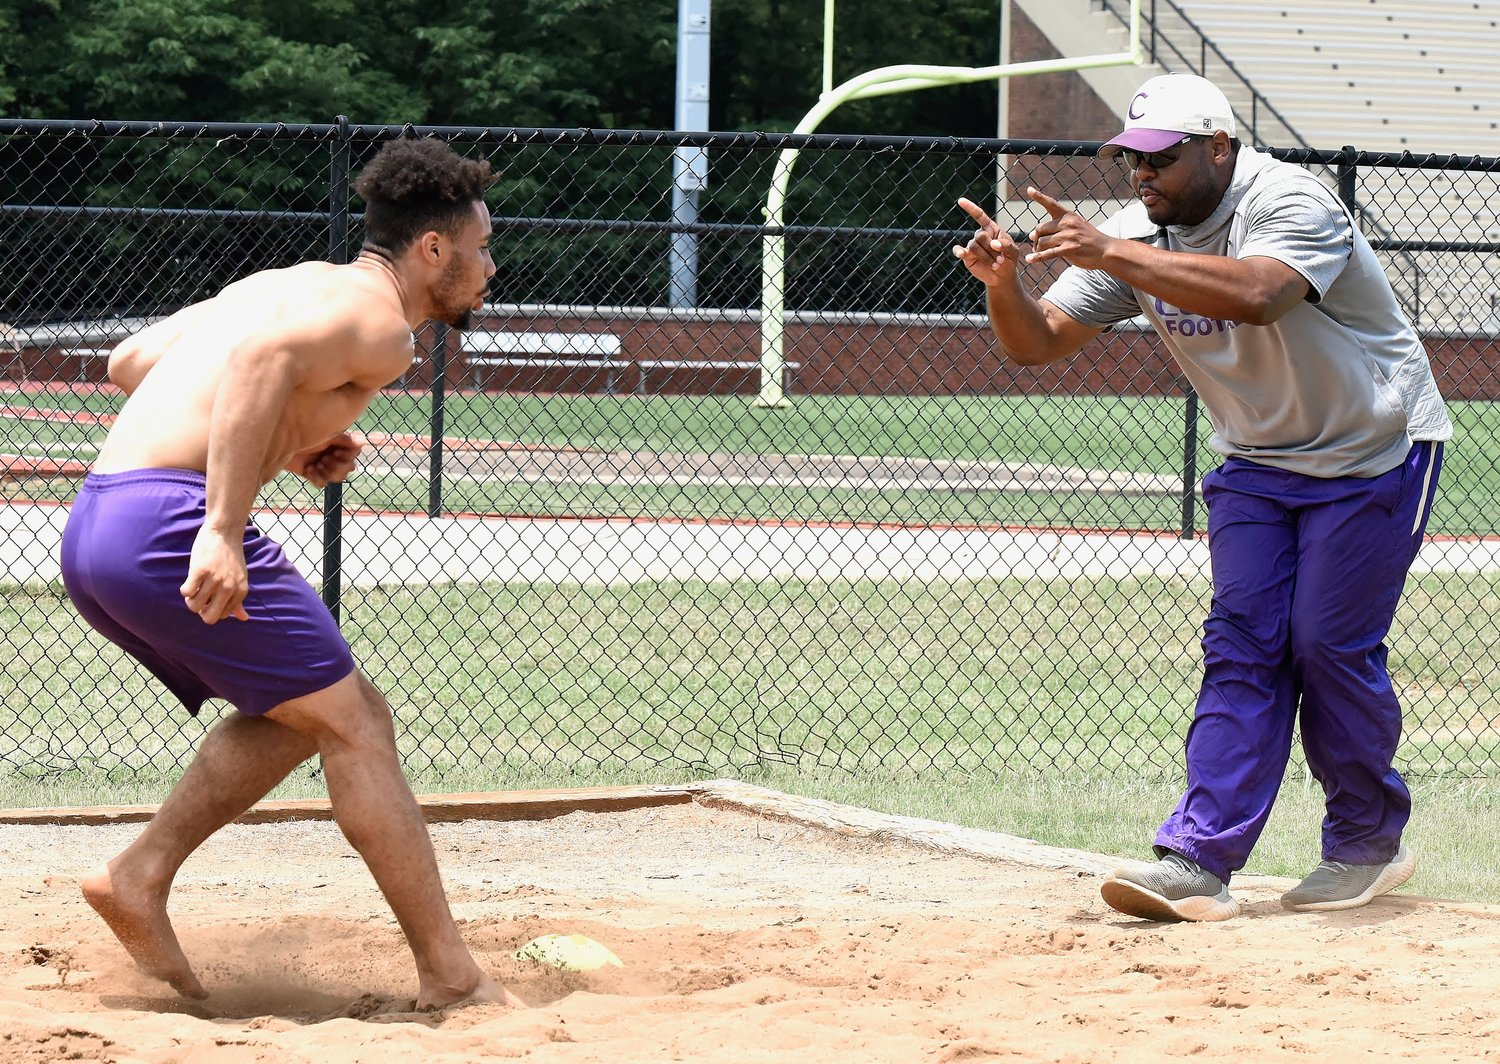 Cartersville rising senior Rashar Locklear is directed by wide receivers coach Jim Jones Tuesday during a drill in a sandpit set up near the Canes practice field.